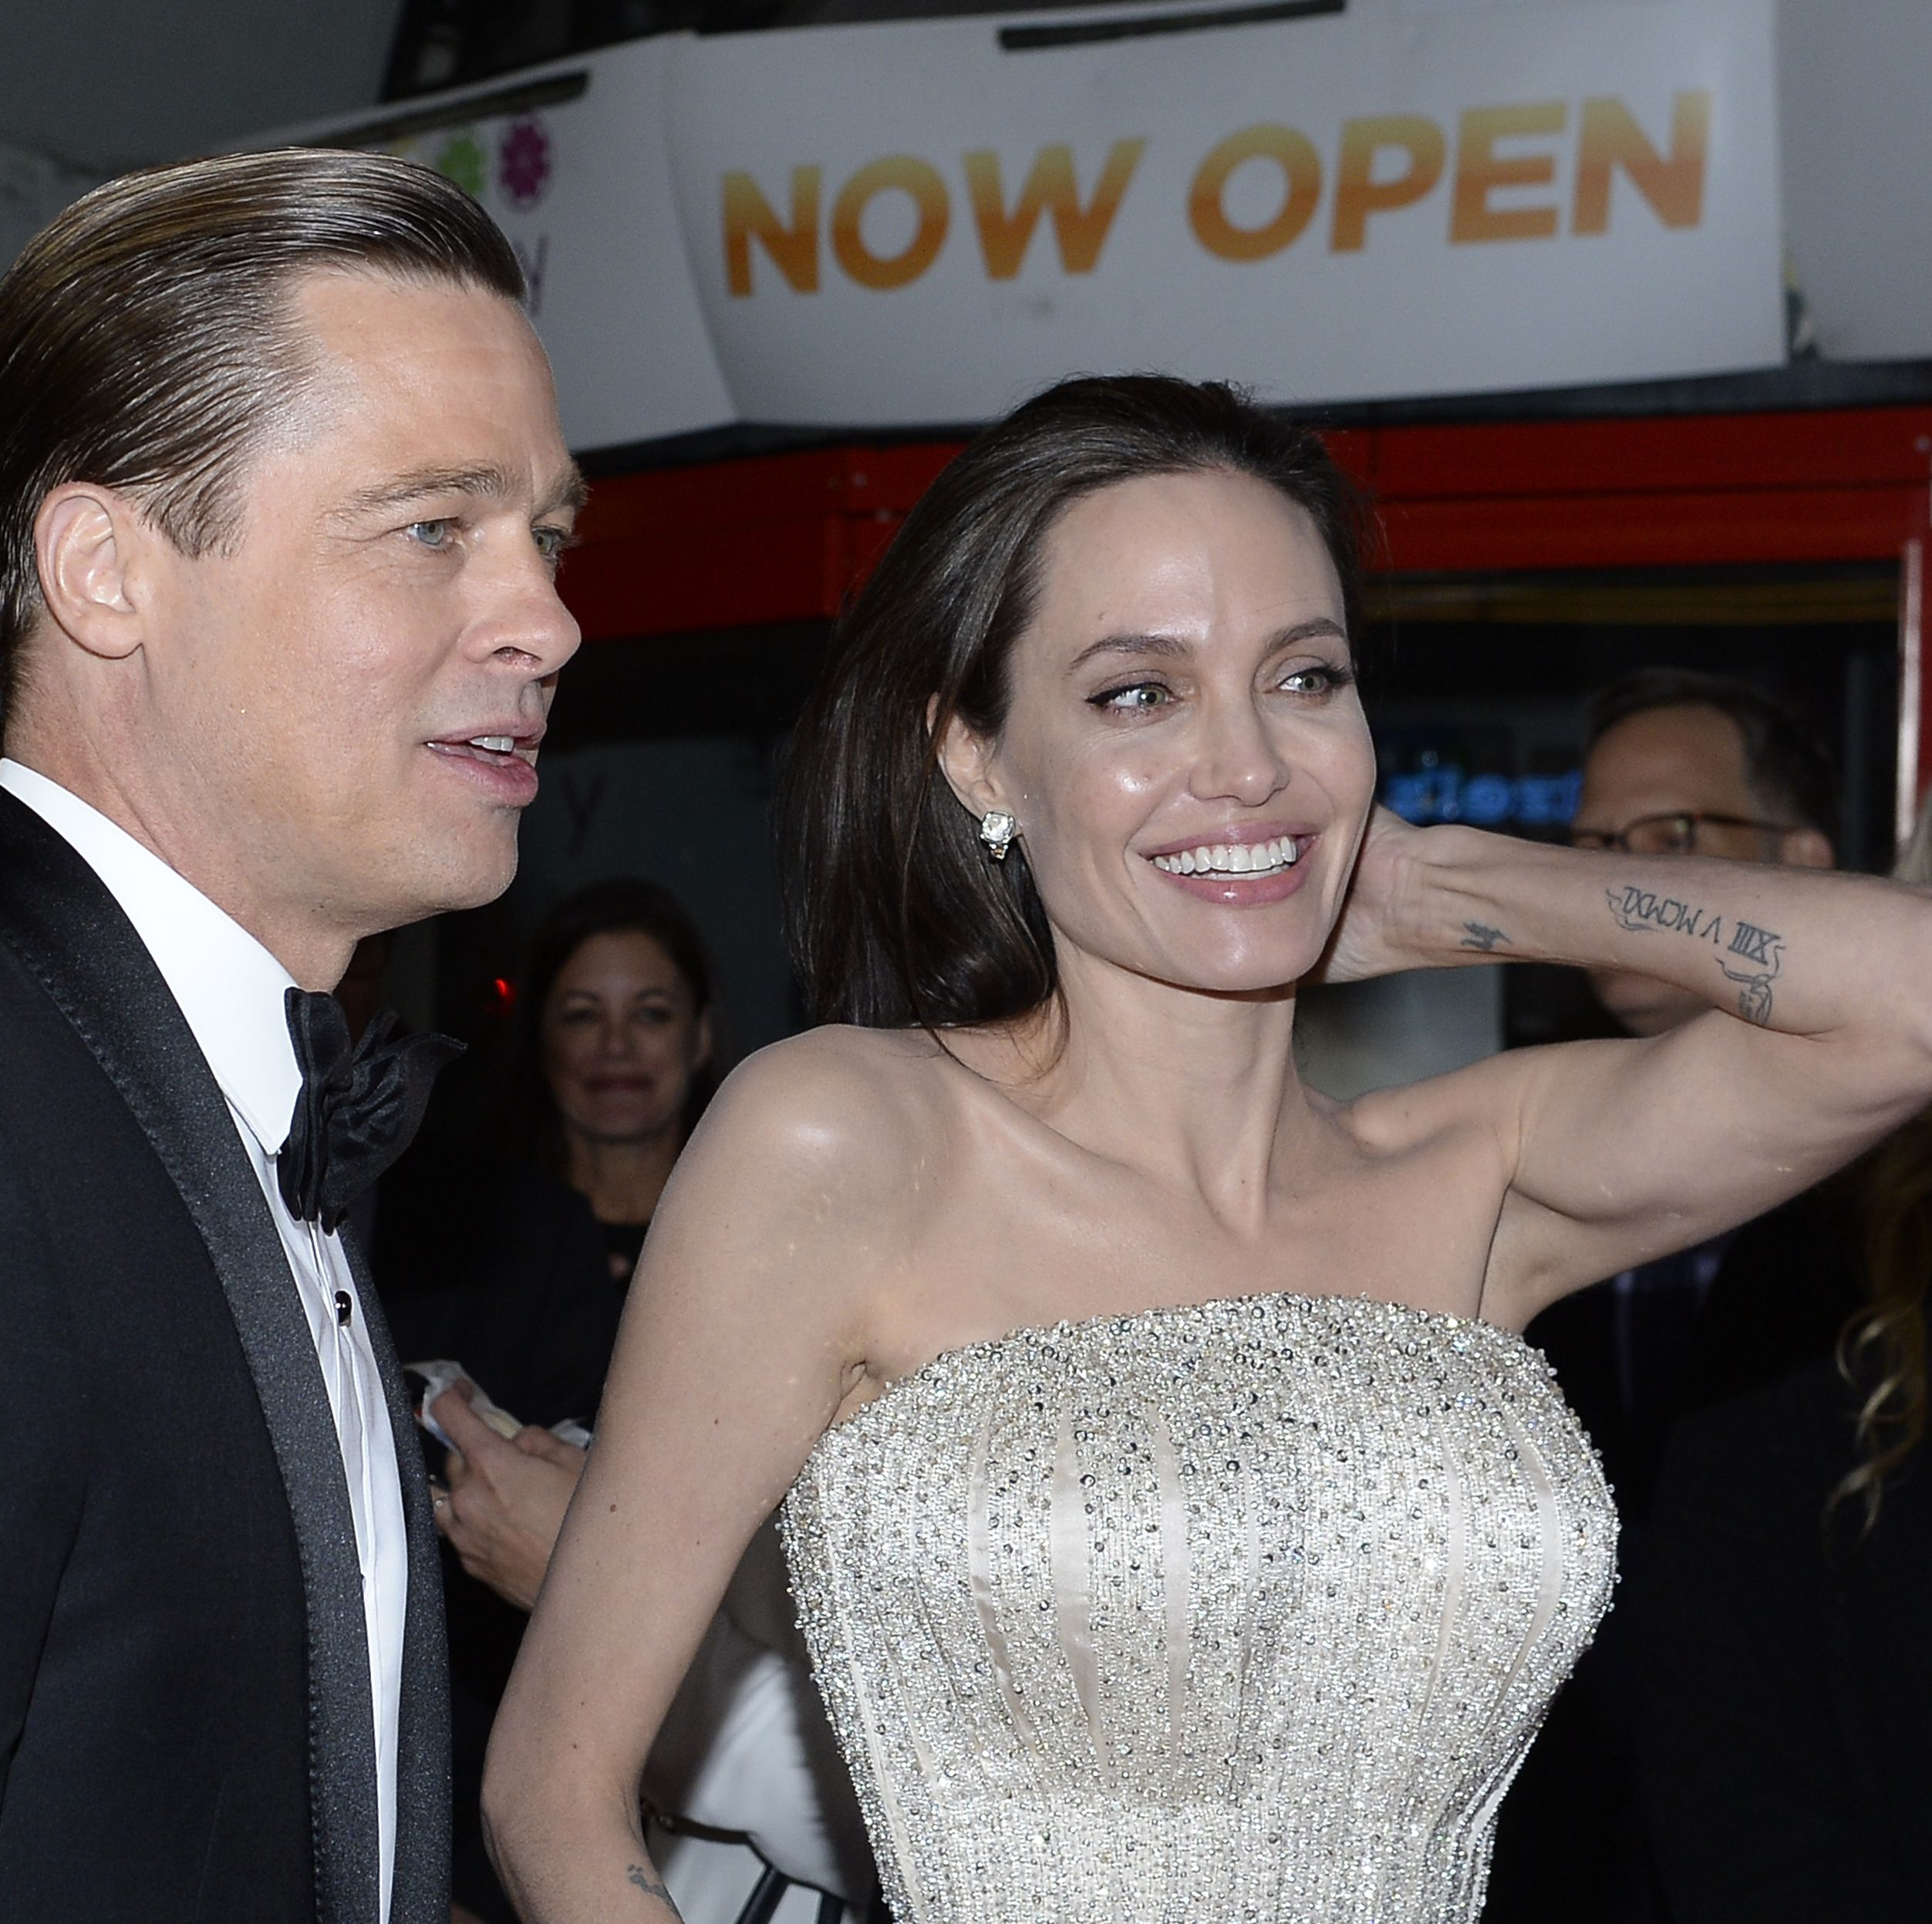 Angelina Jolie and Brad Pitt Are Negotiating Legal Single Status